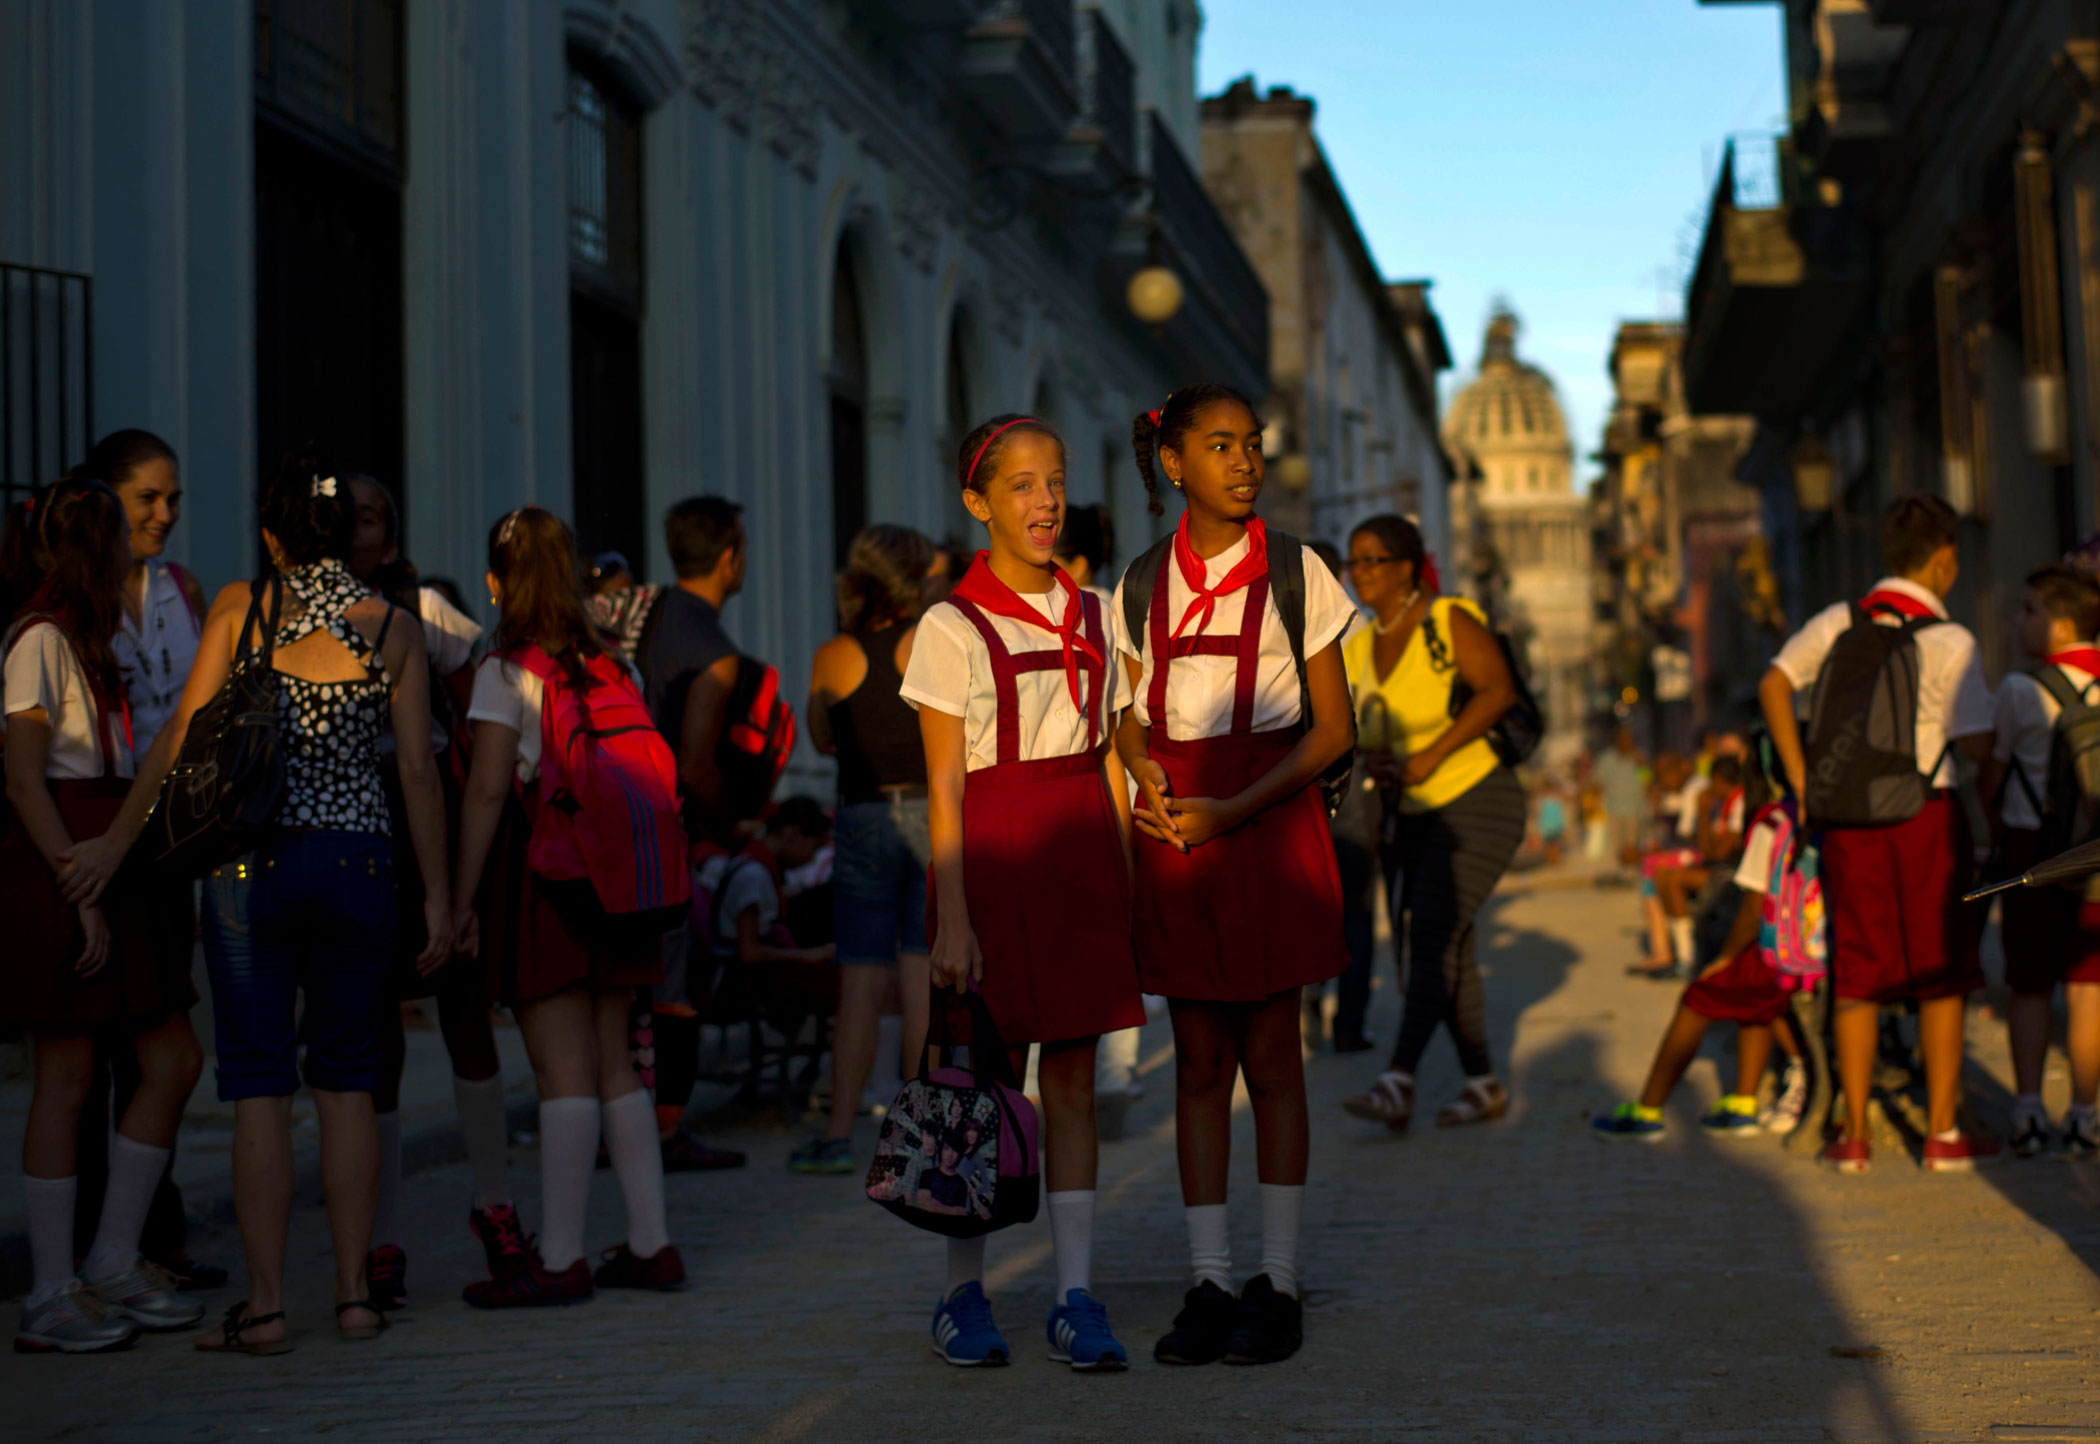 Girls in their uniforms wait for a classmate before going to school in Old Havana, Cuba on Sept. 1, 2014. Monday marked the first day back to class for students across Cuba.